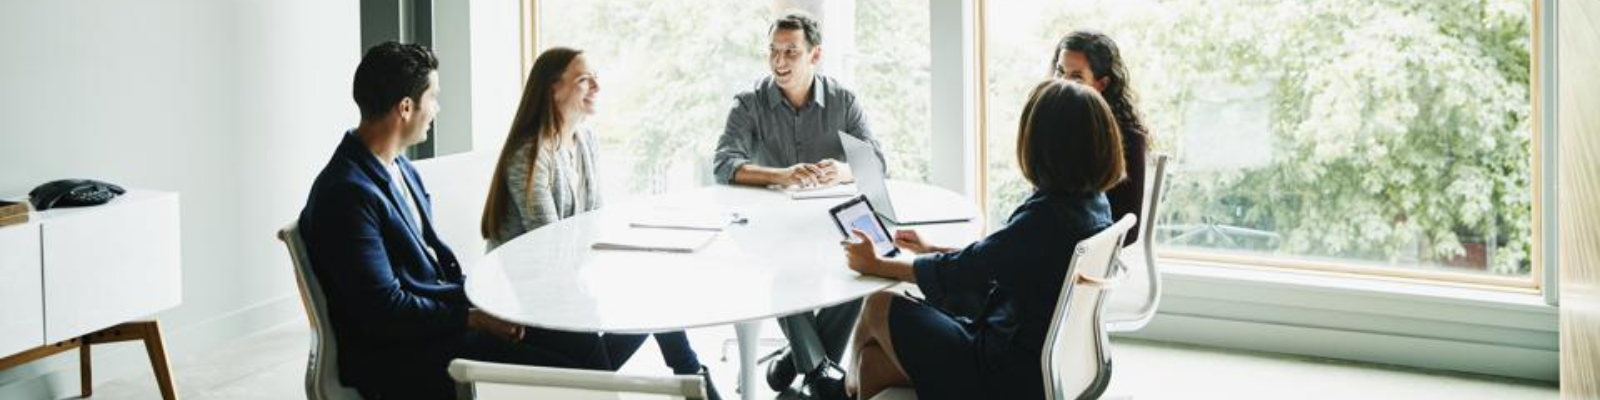 10 Reasons Why Business Owners Should Consider Joining A Peer Advisory Board